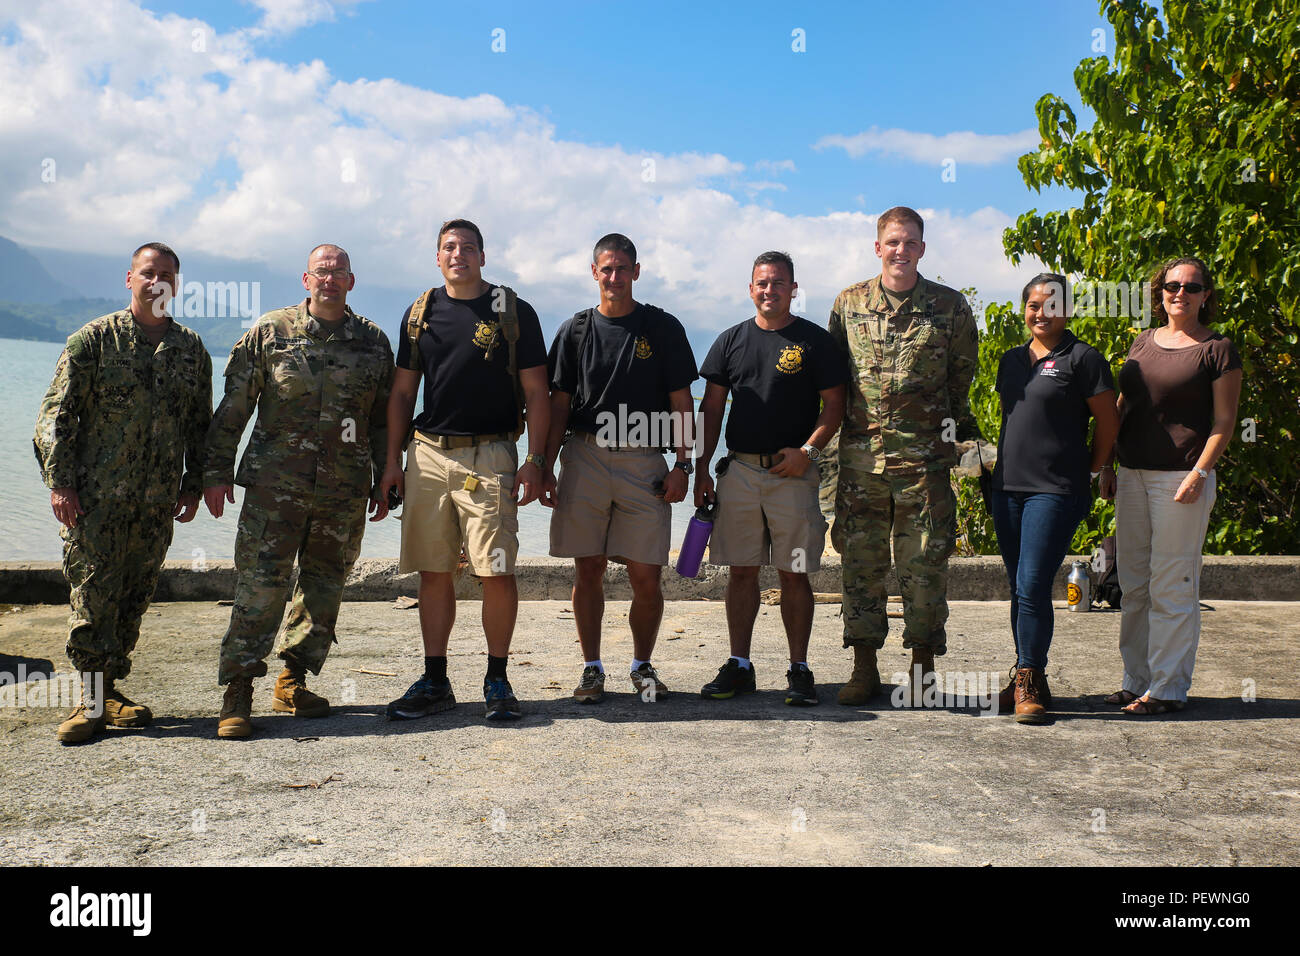 Soldiers With The US Army 7th Dive Division 65th Engineer Battalion 130th Brigade And Corps Of Engineers Pose For A Photo